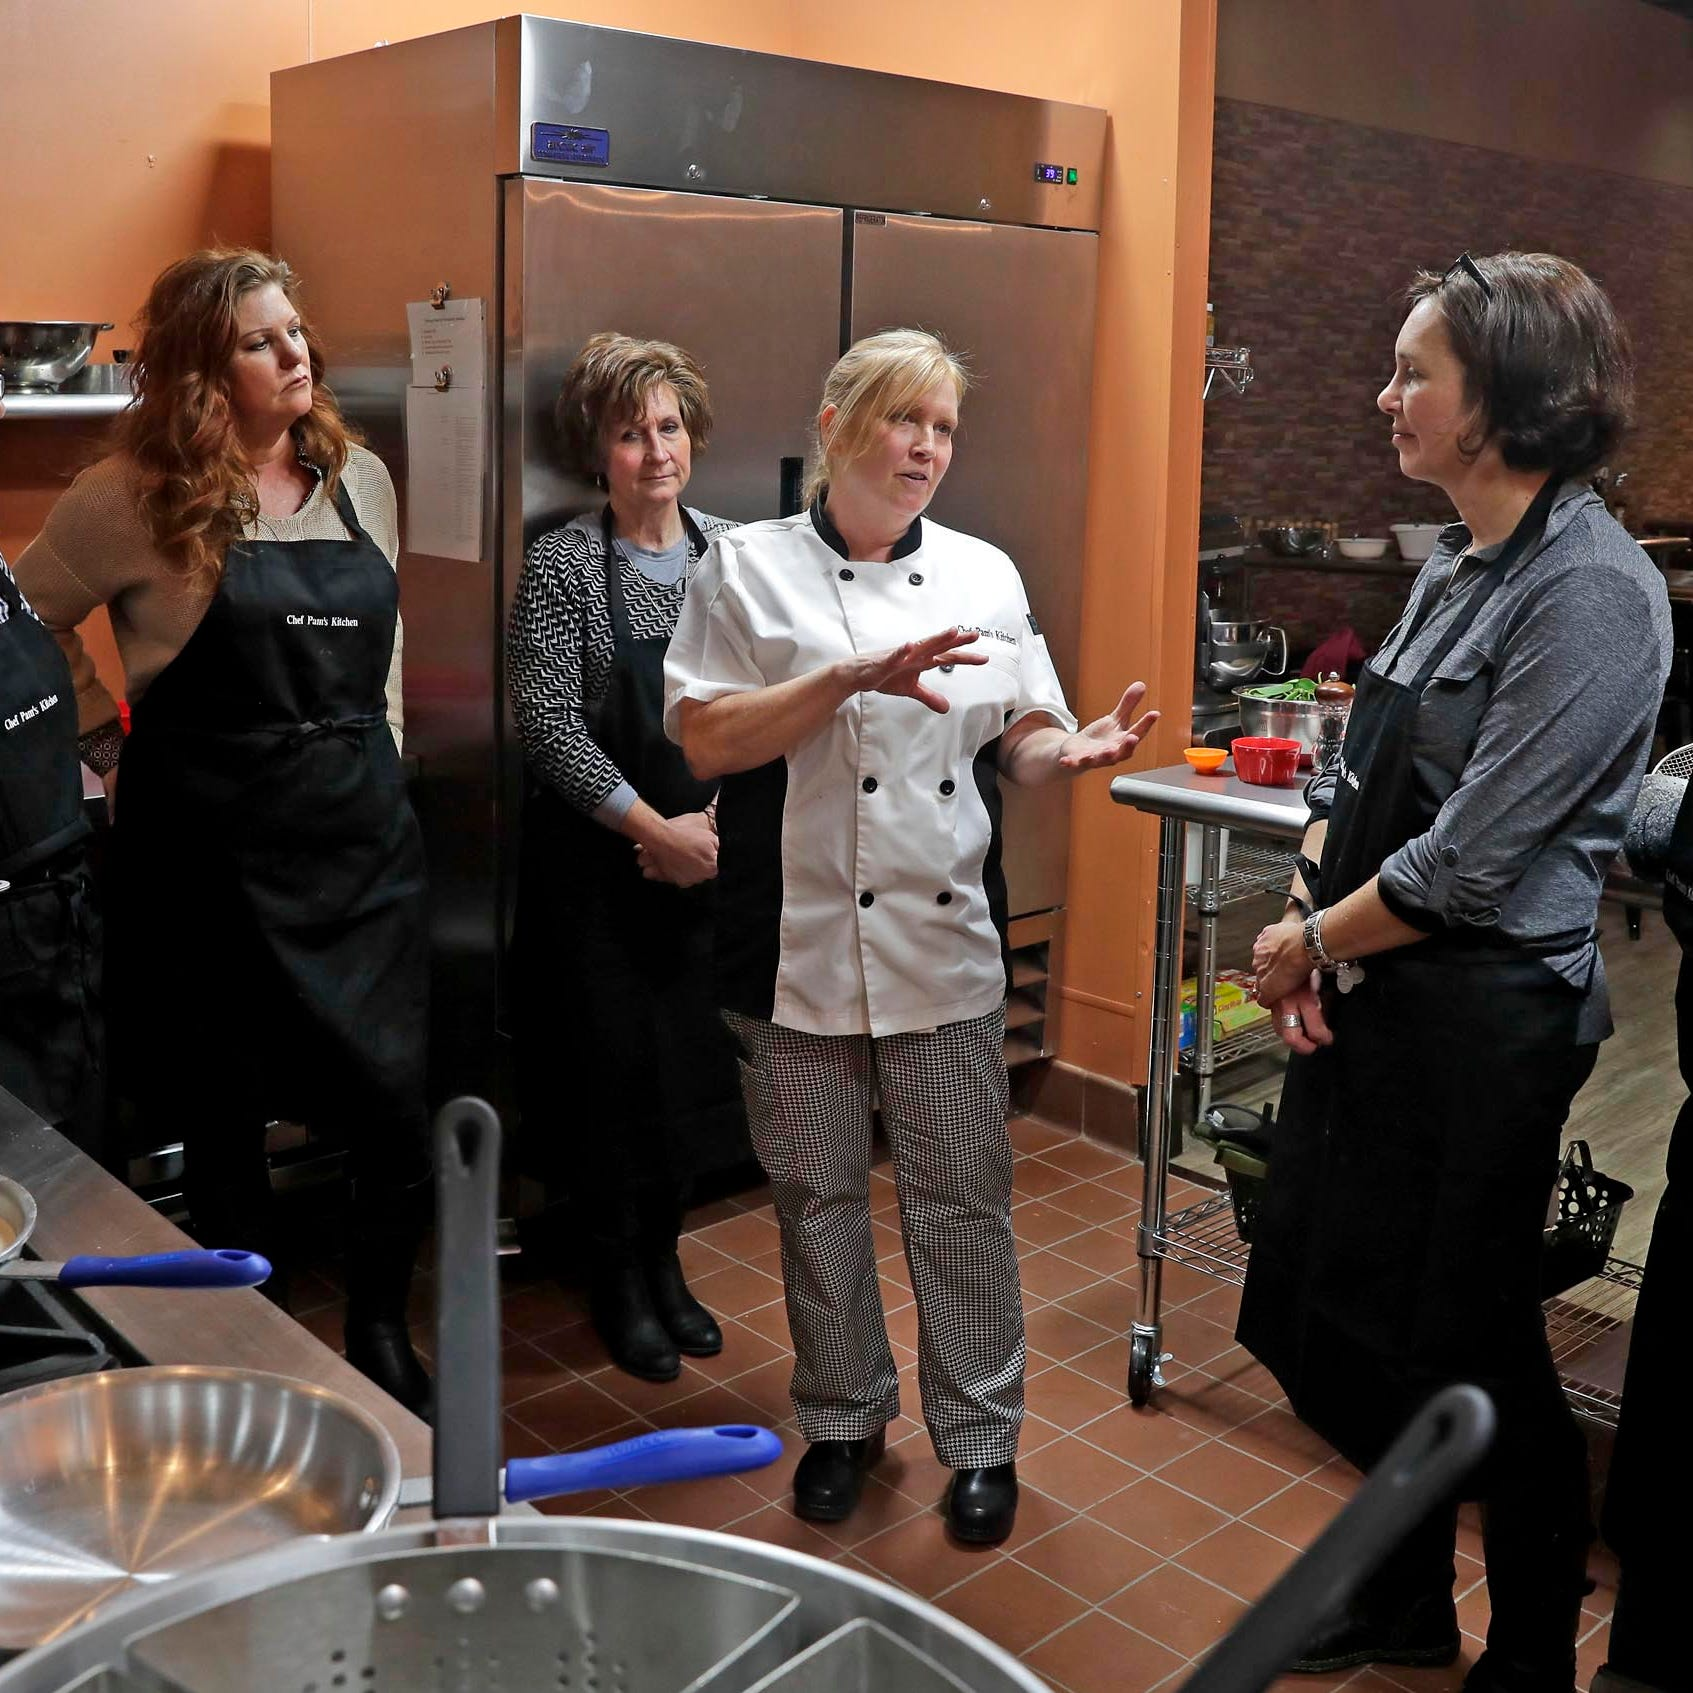 She was a Navy nurse overseas, dining with an 'Italian Mom.' Now she runs a cooking school